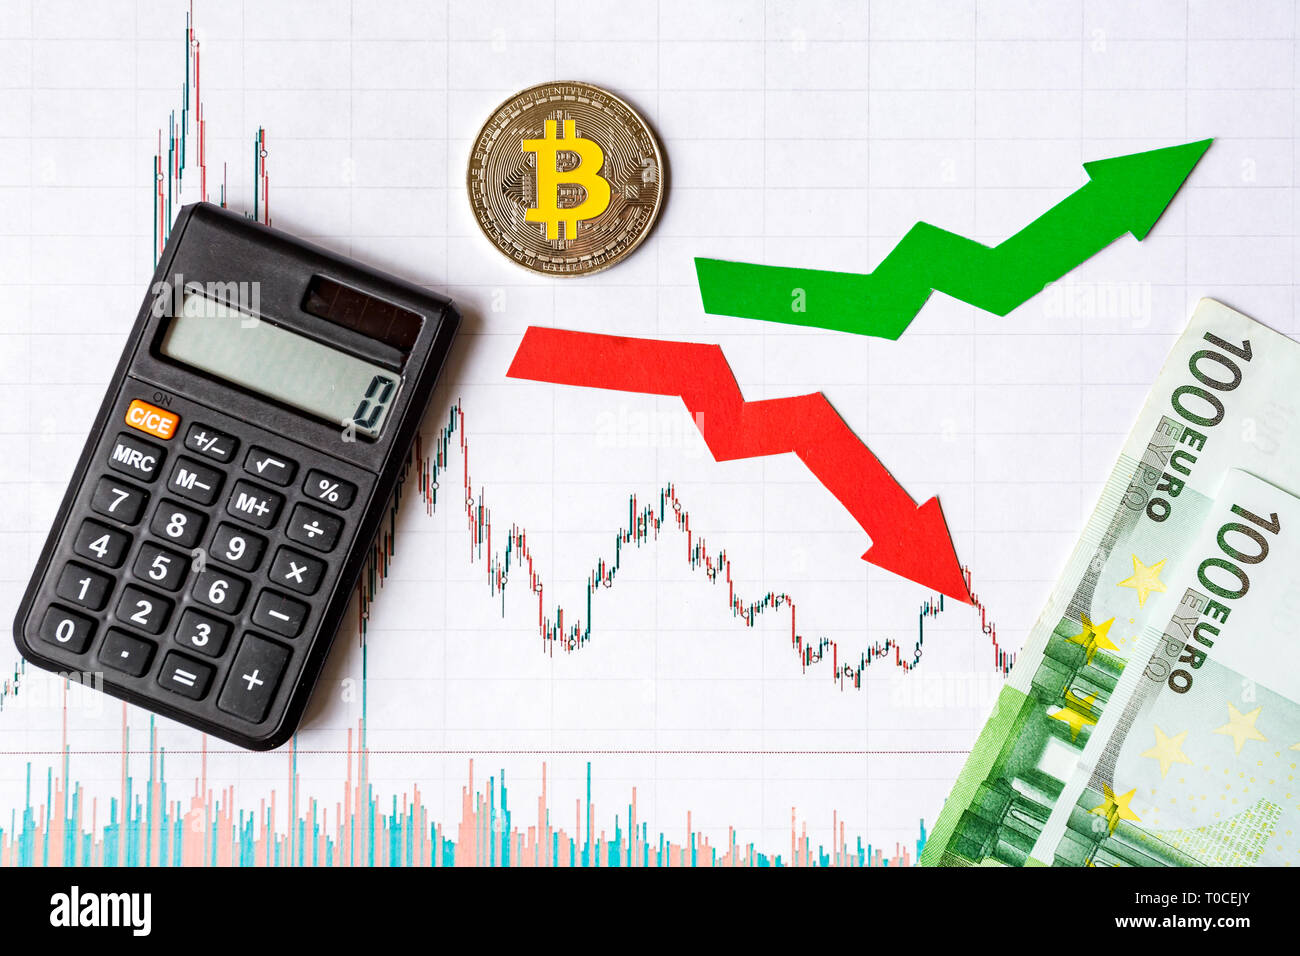 fluctuations  and forecasting of exchange rates of virtual money. Red and green arrows with golden Bitcoin ladder on white paper forex chart backgroun - Stock Image